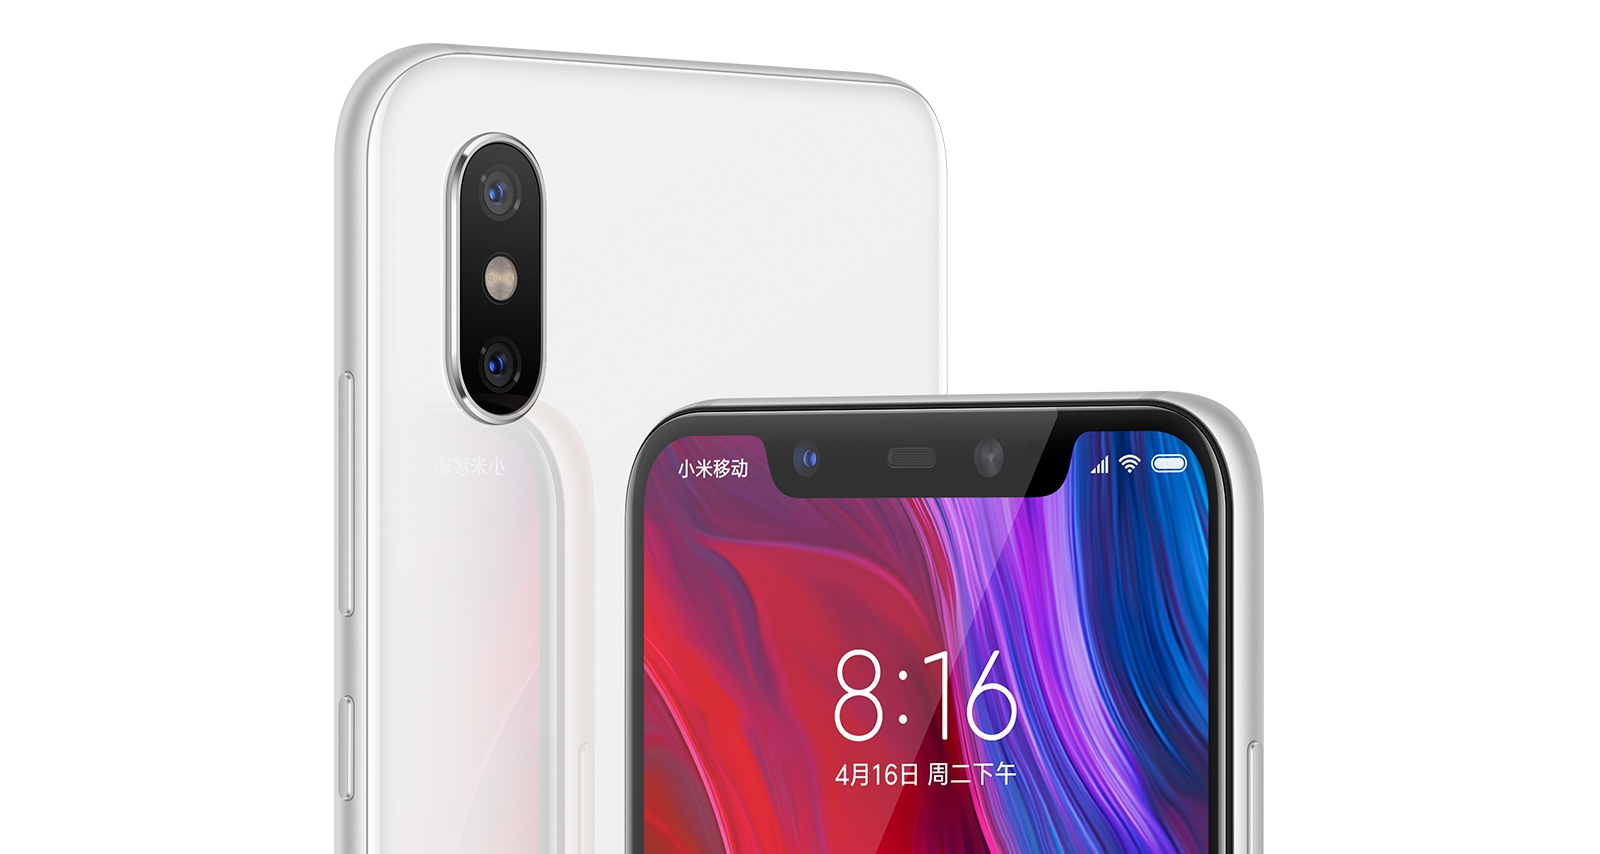 Xiaomi Mi8 Flagship Smartphone With 12MP Dual Lenses & 20MP Selfie Camera